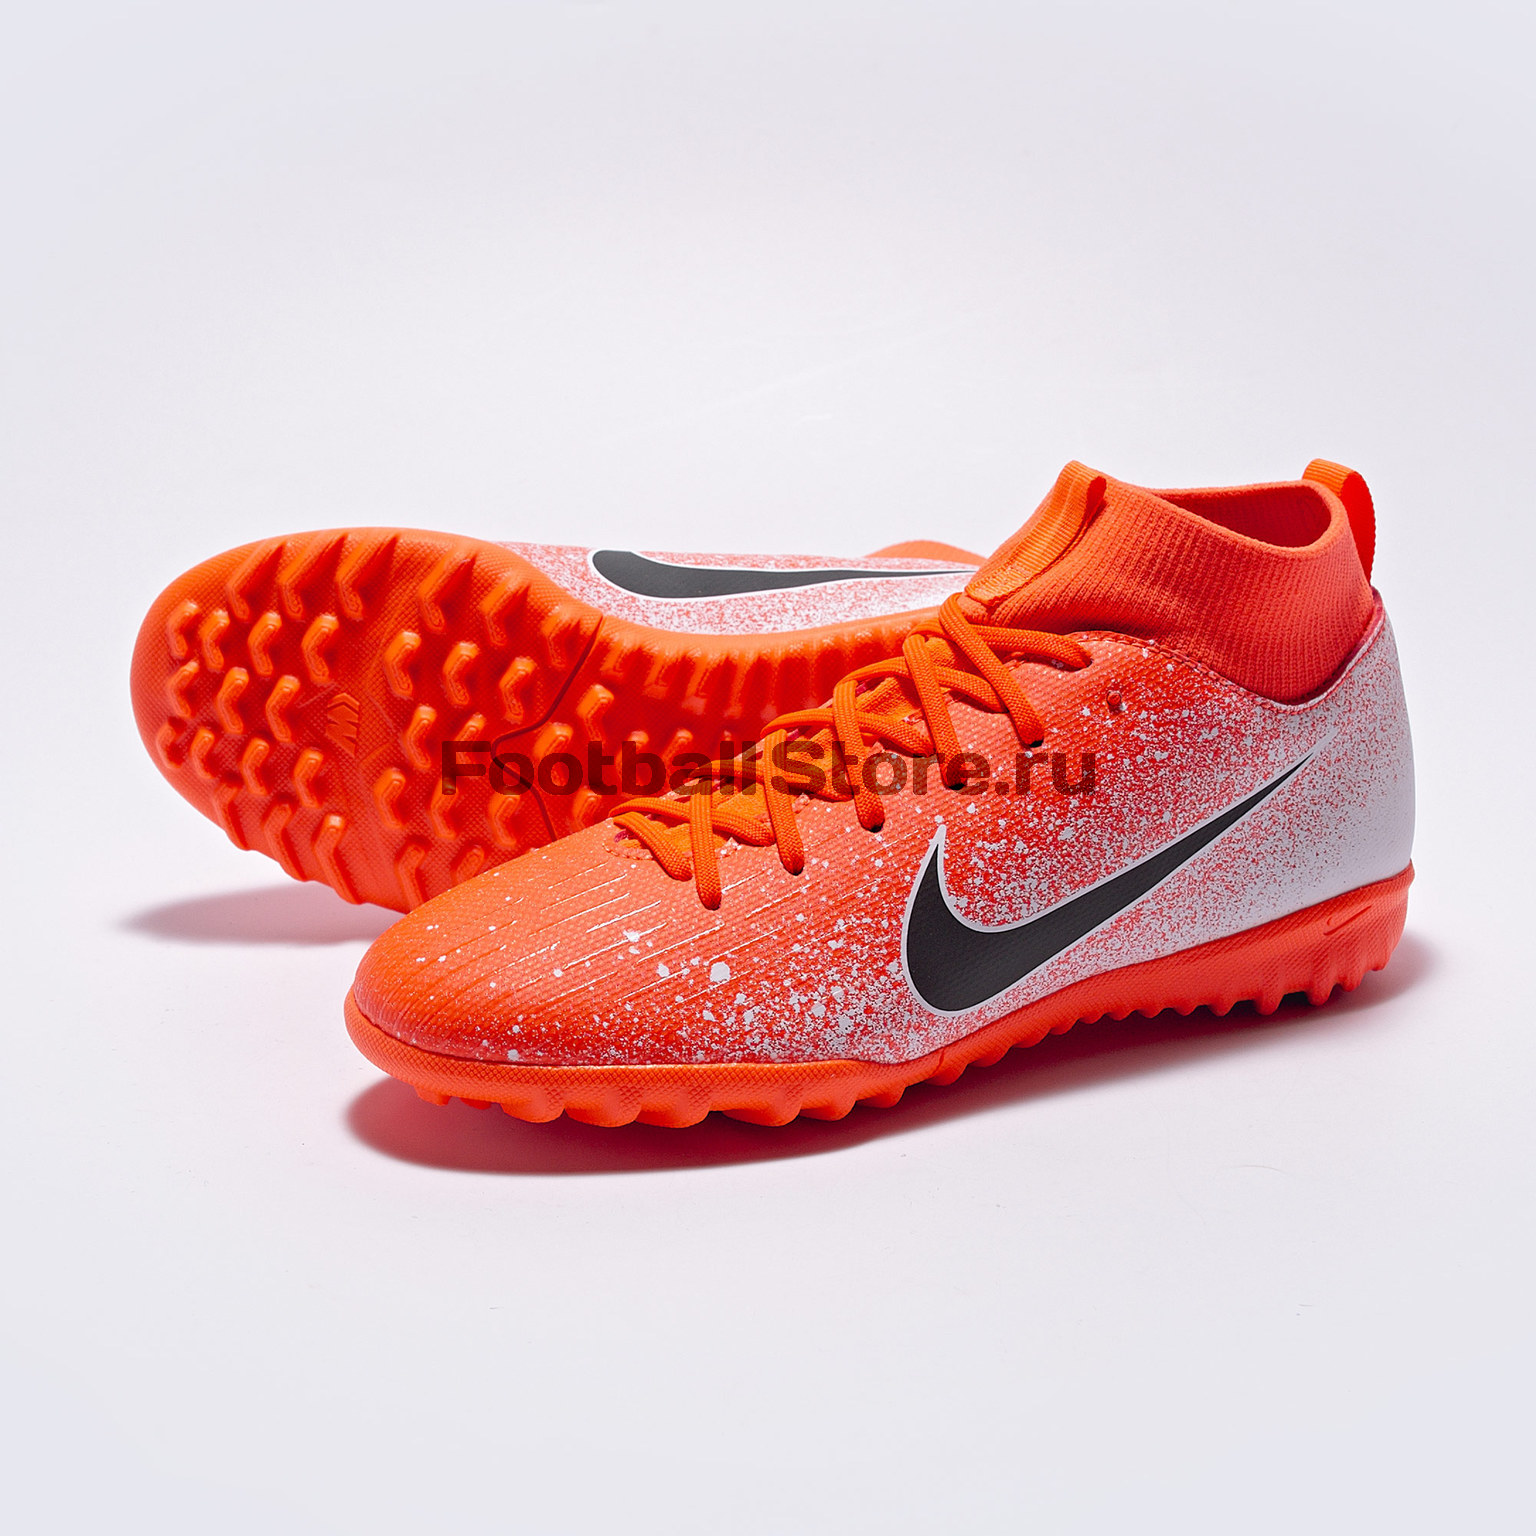 Шиповки детские Nike SuperFly Academy GS TF AH7344-801